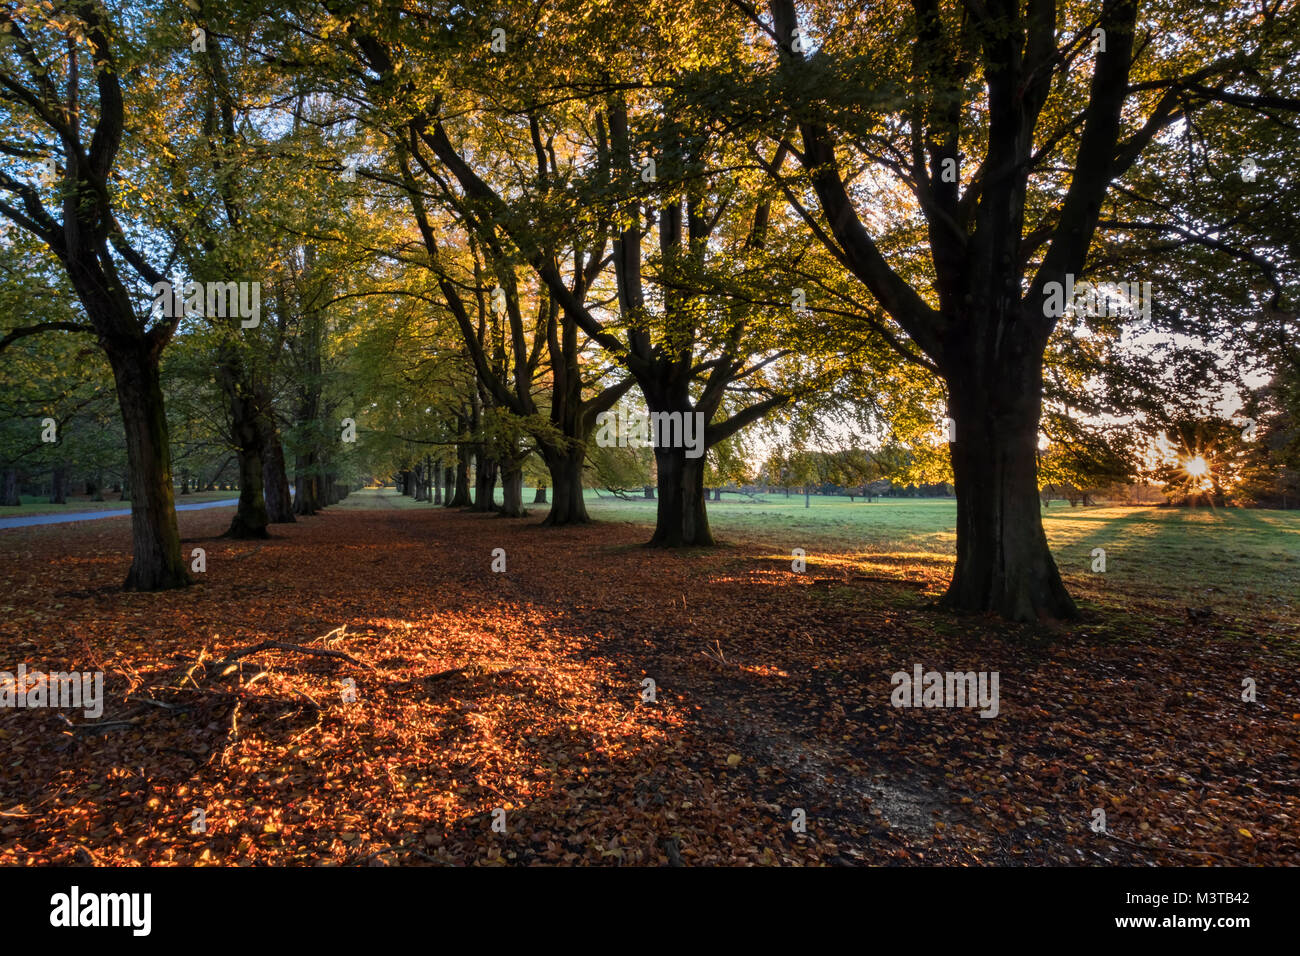 Between the Beeches, Autumn Beech Tree Avenue in Tatton Park, near Knutsford, Cheshire, England, UK - Stock Image